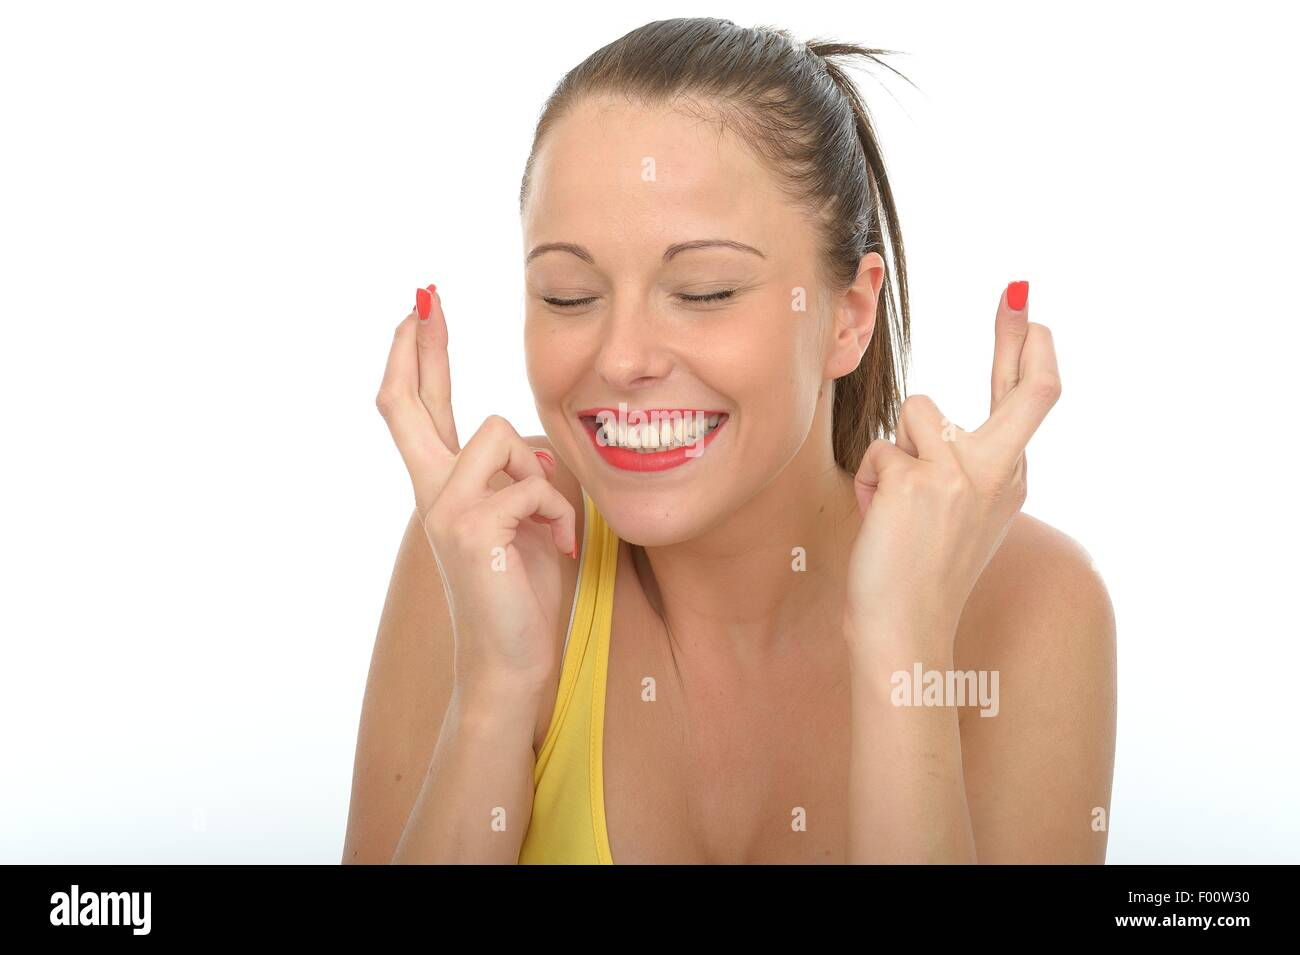 Portrait of a Happy Excited Young Woman With Her Fingers Crossed - Stock Image